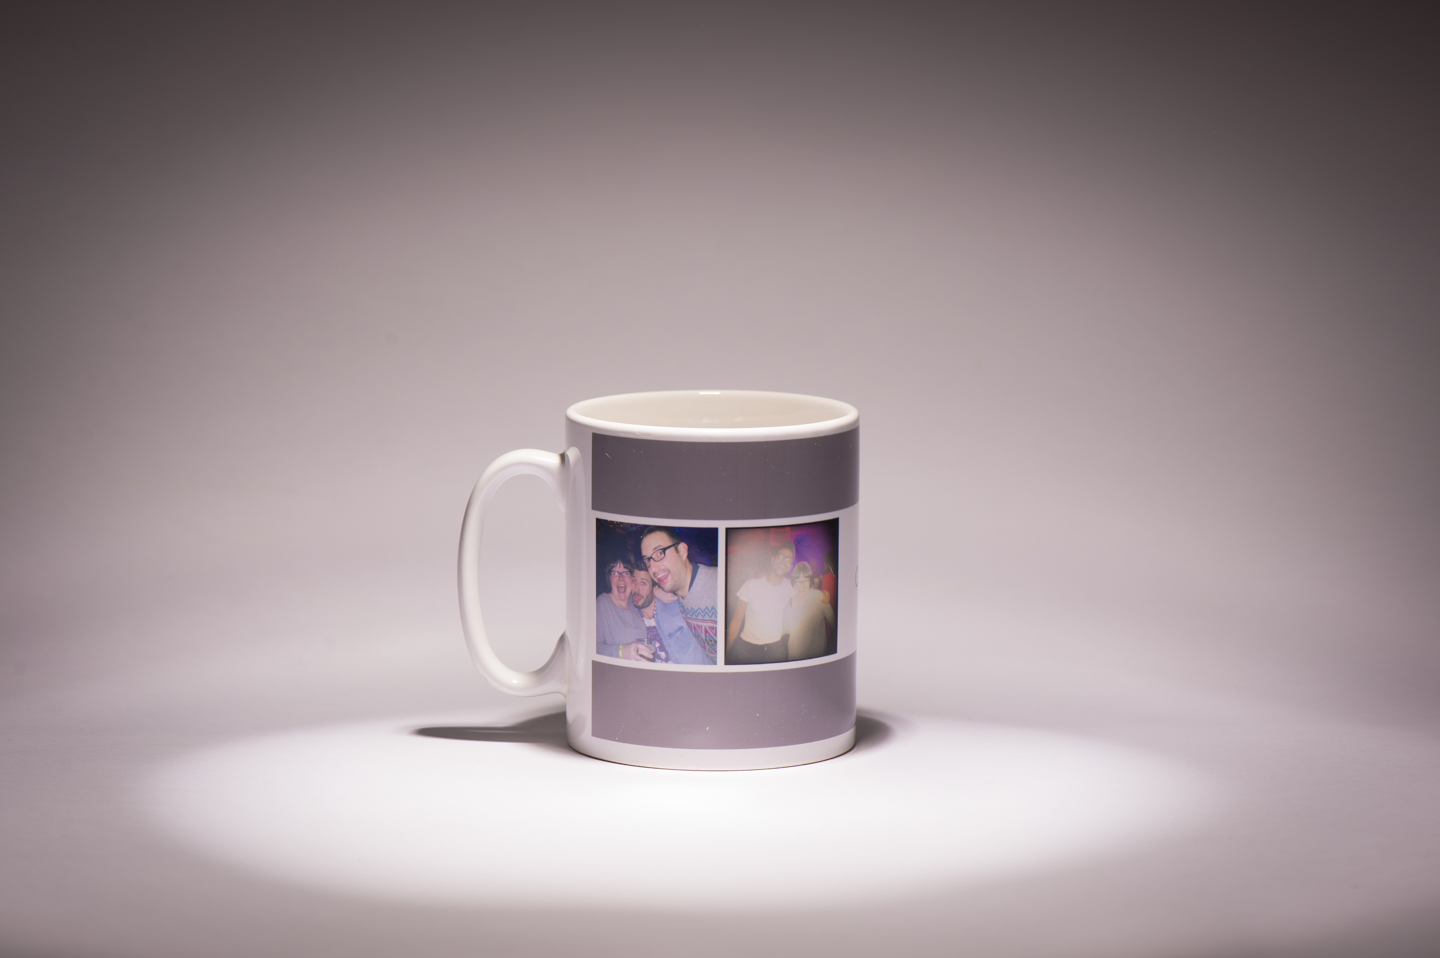 This mug is quite a hard one to post as it has two layers. It was given to my wife by her team at her first big job in London. This job was really the first time she took on a role that was perfect for her skills and had a great team around her, all vibes were good and I was very proud. Unfortunately it was also the time when I changed shooting types and concentrated much more on commercial/money earning work. I now think of it as the time I made a wrong move and dug myself into a hole I am now really struggling to get out of. I don't resent the work as I met great people and supported my household well. It also tought me how to be a true professional but creatively I was drowning. The mug represents every aspect of that perfectly.